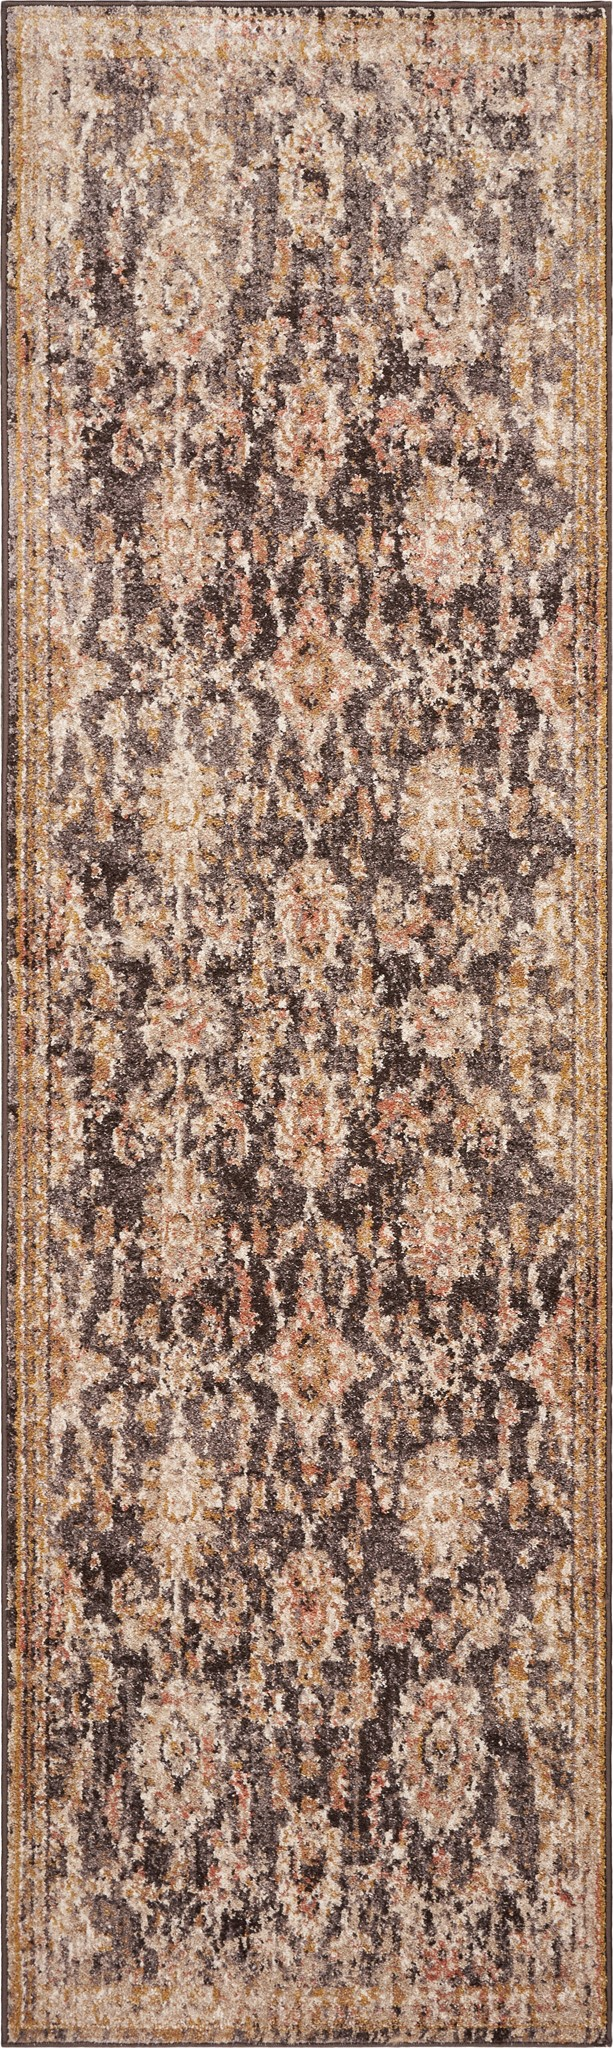 Manor 6352 Taupe Chester